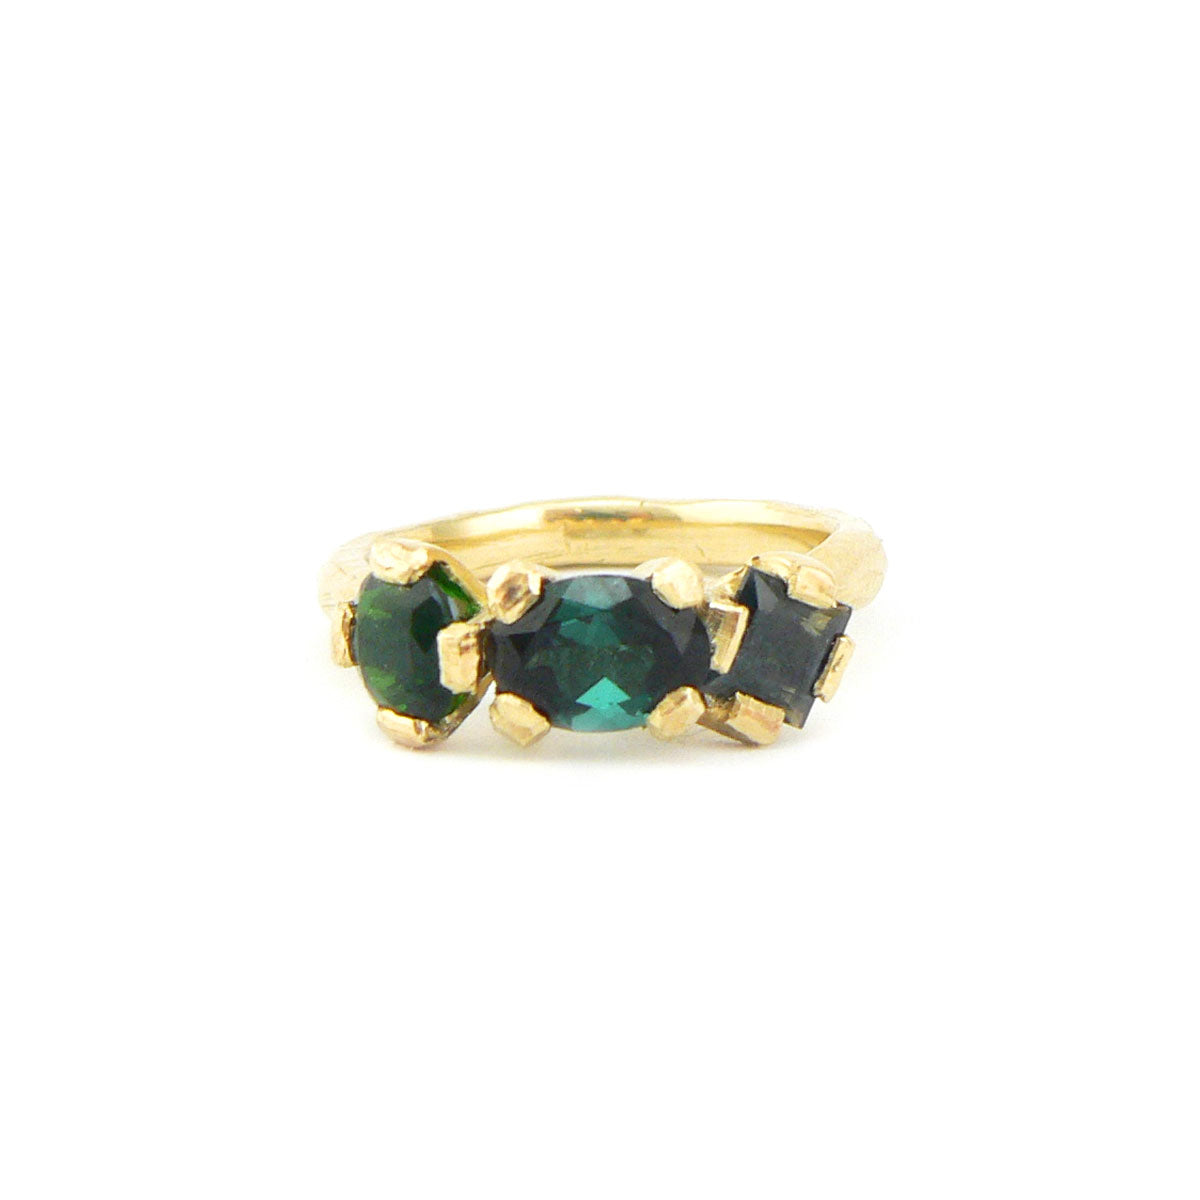 ethically sourced tourmalines in 18ct yellow gold engagement ring, bespoke custom handmade